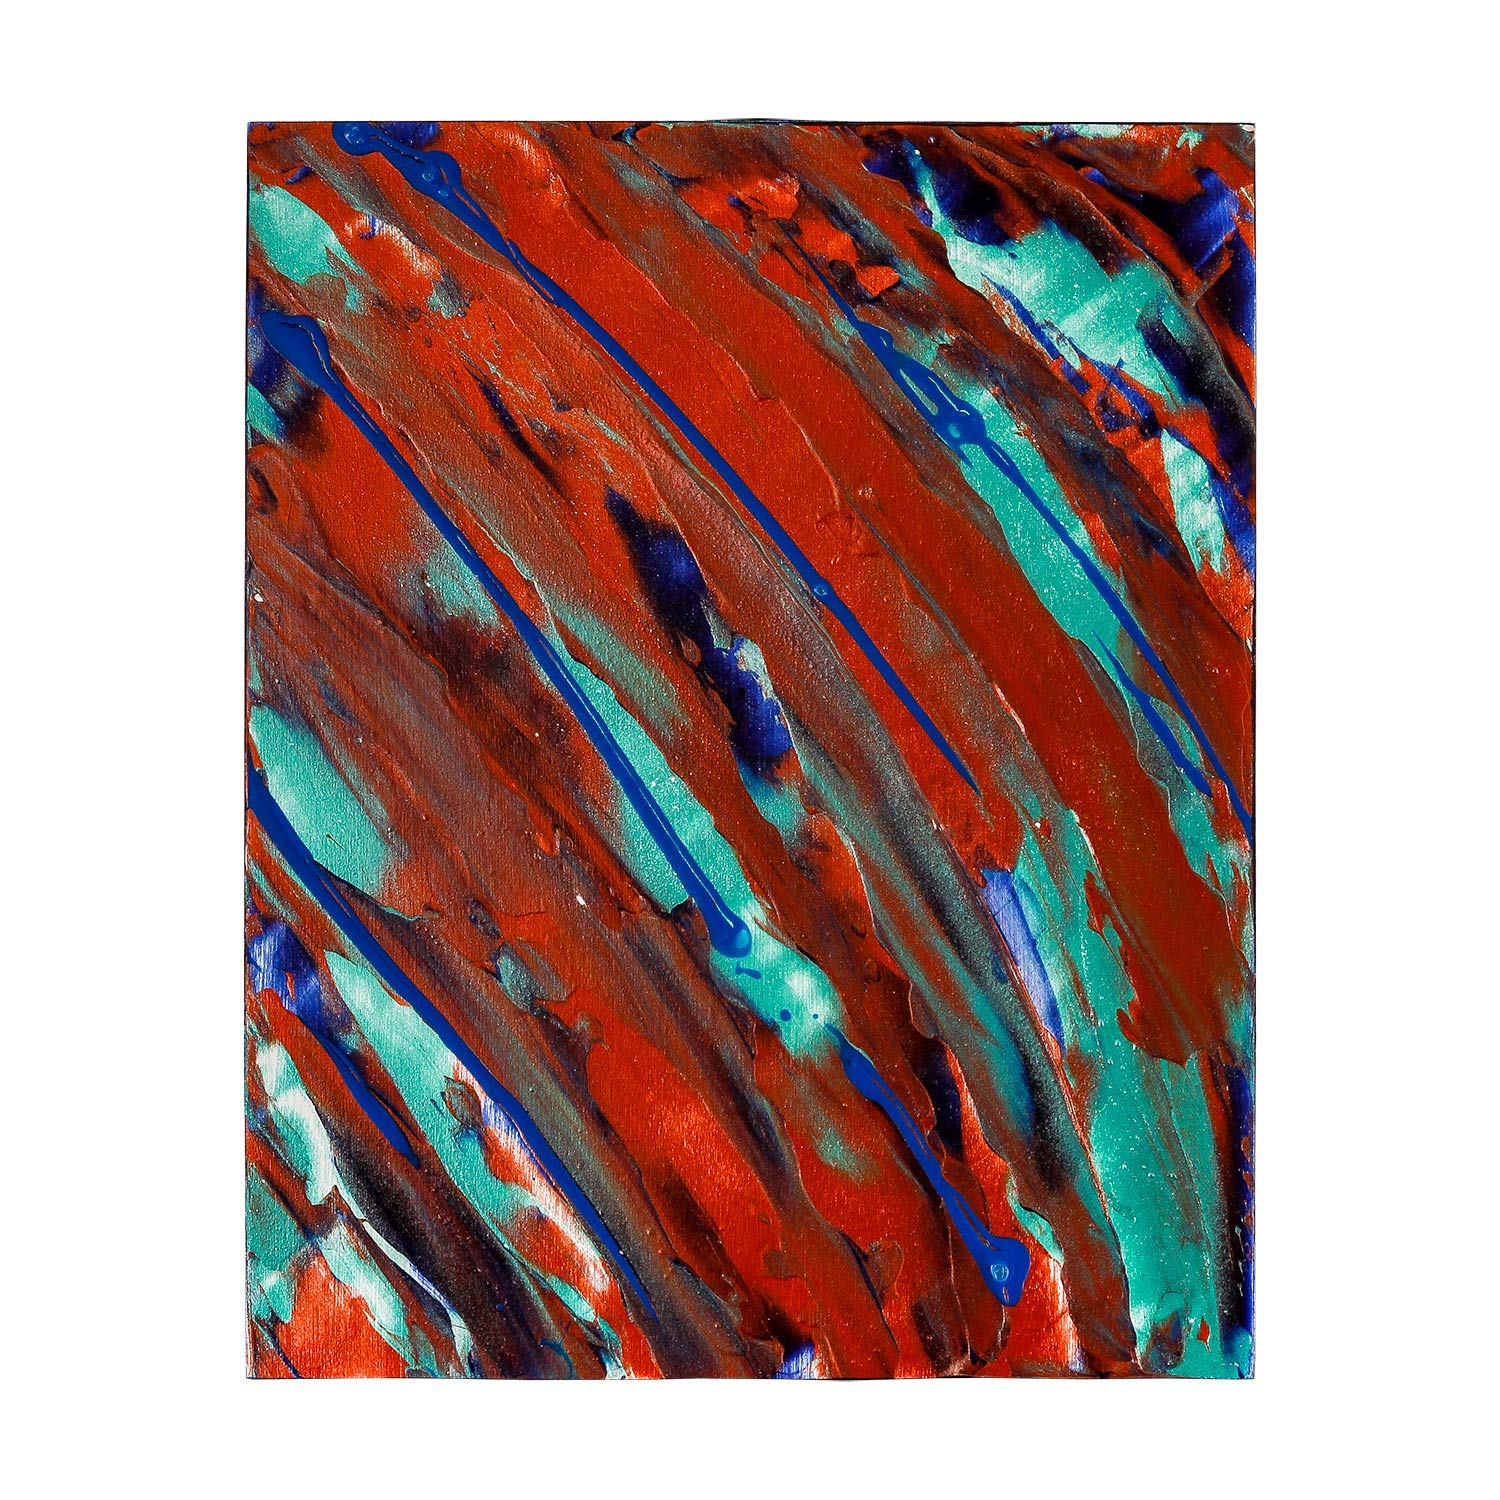 Acrylic Painting Mixed-Media Craft Pack of 2 Art Supply 16 x 20 Birch Wood Paint Pouring Panel Boards Oil Encaustic Watercolor Studio 3//4 Deep Cradle - Artist Wooden Wall Canvases U.S